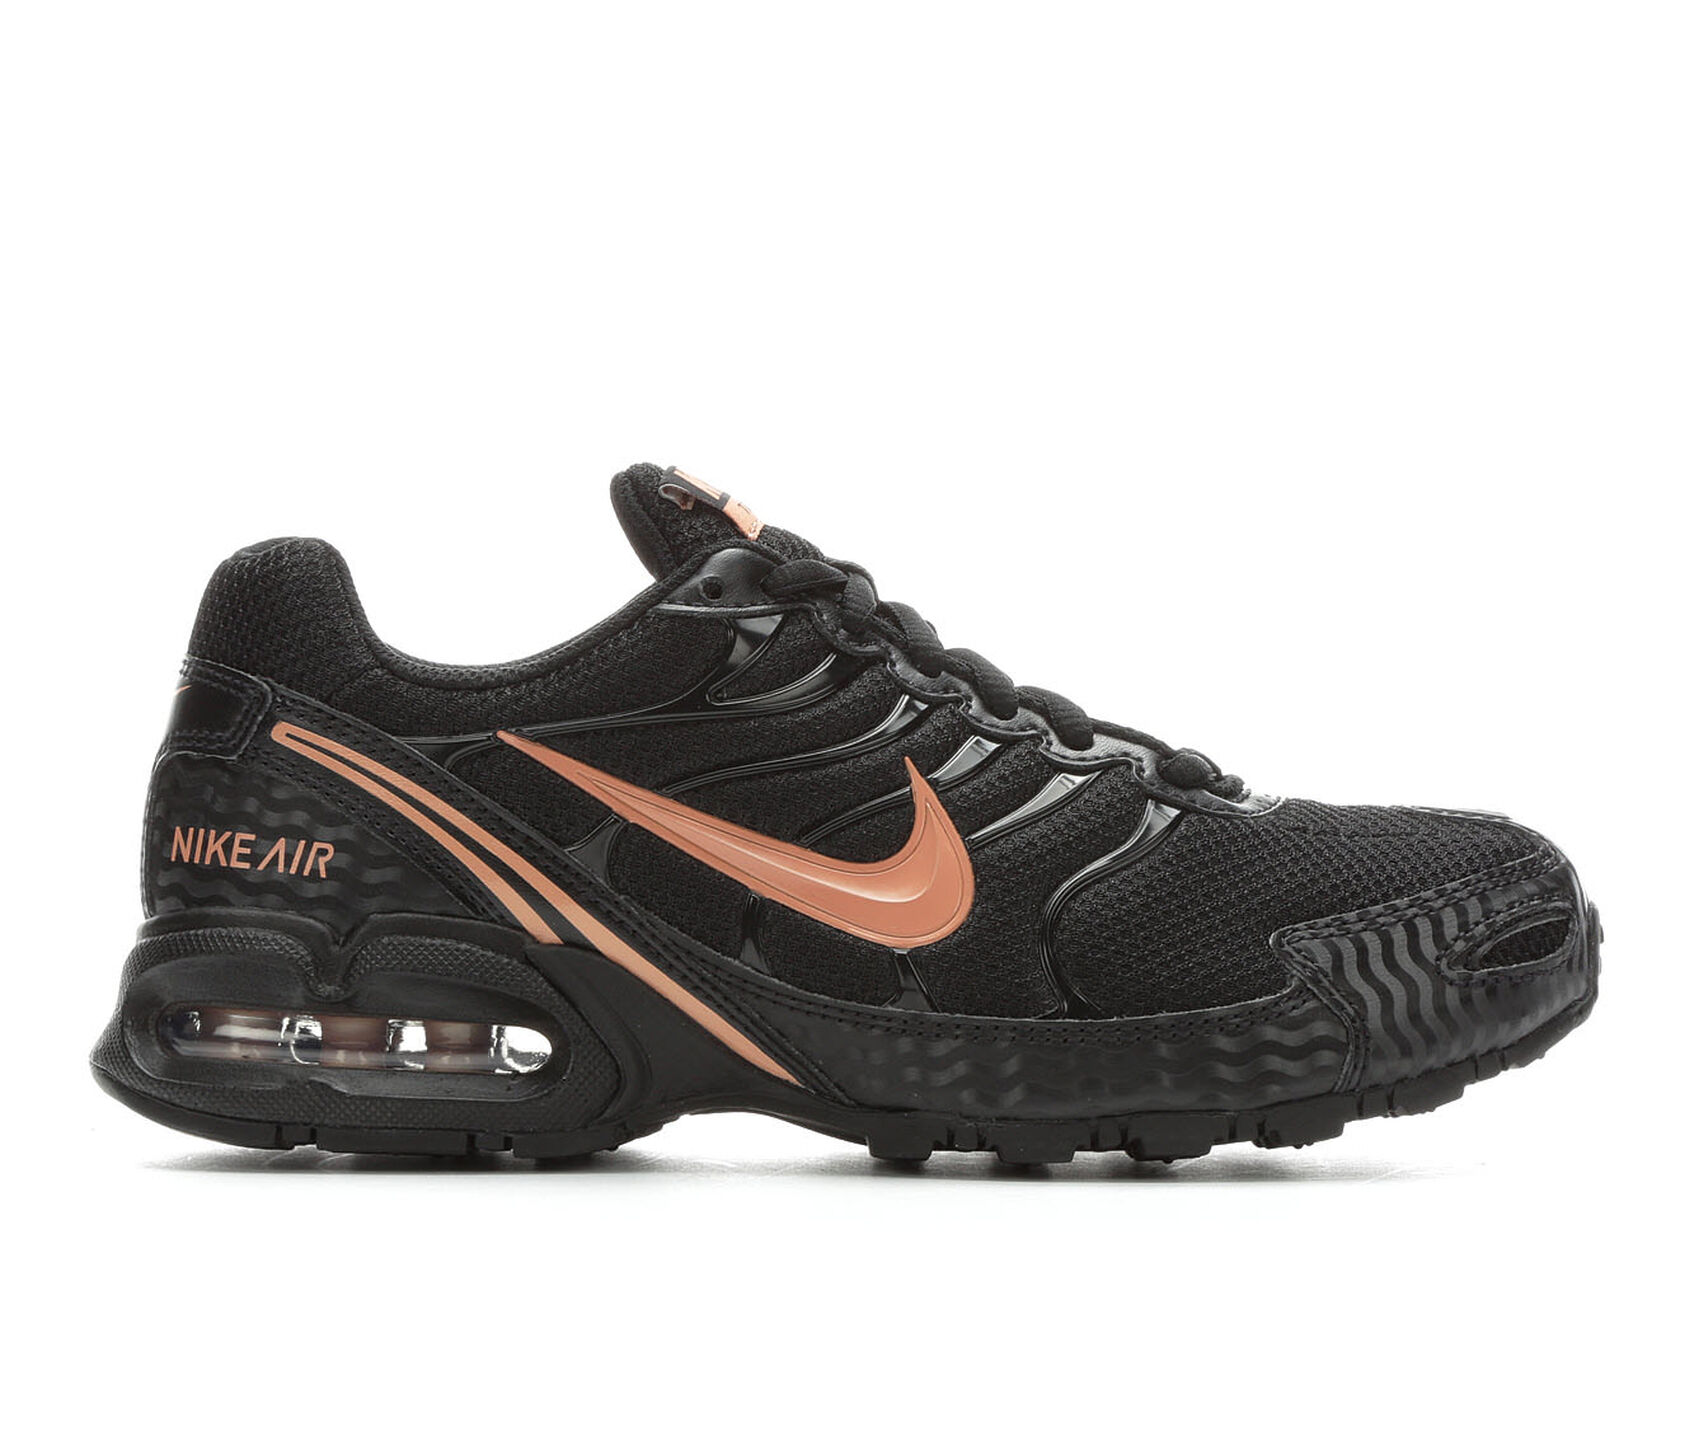 19b8f3741c91b ... Womens Nike Air Max Torch 4 Running Shoes Shoe Carnival 2019 outlet  40e03 23fcf ...